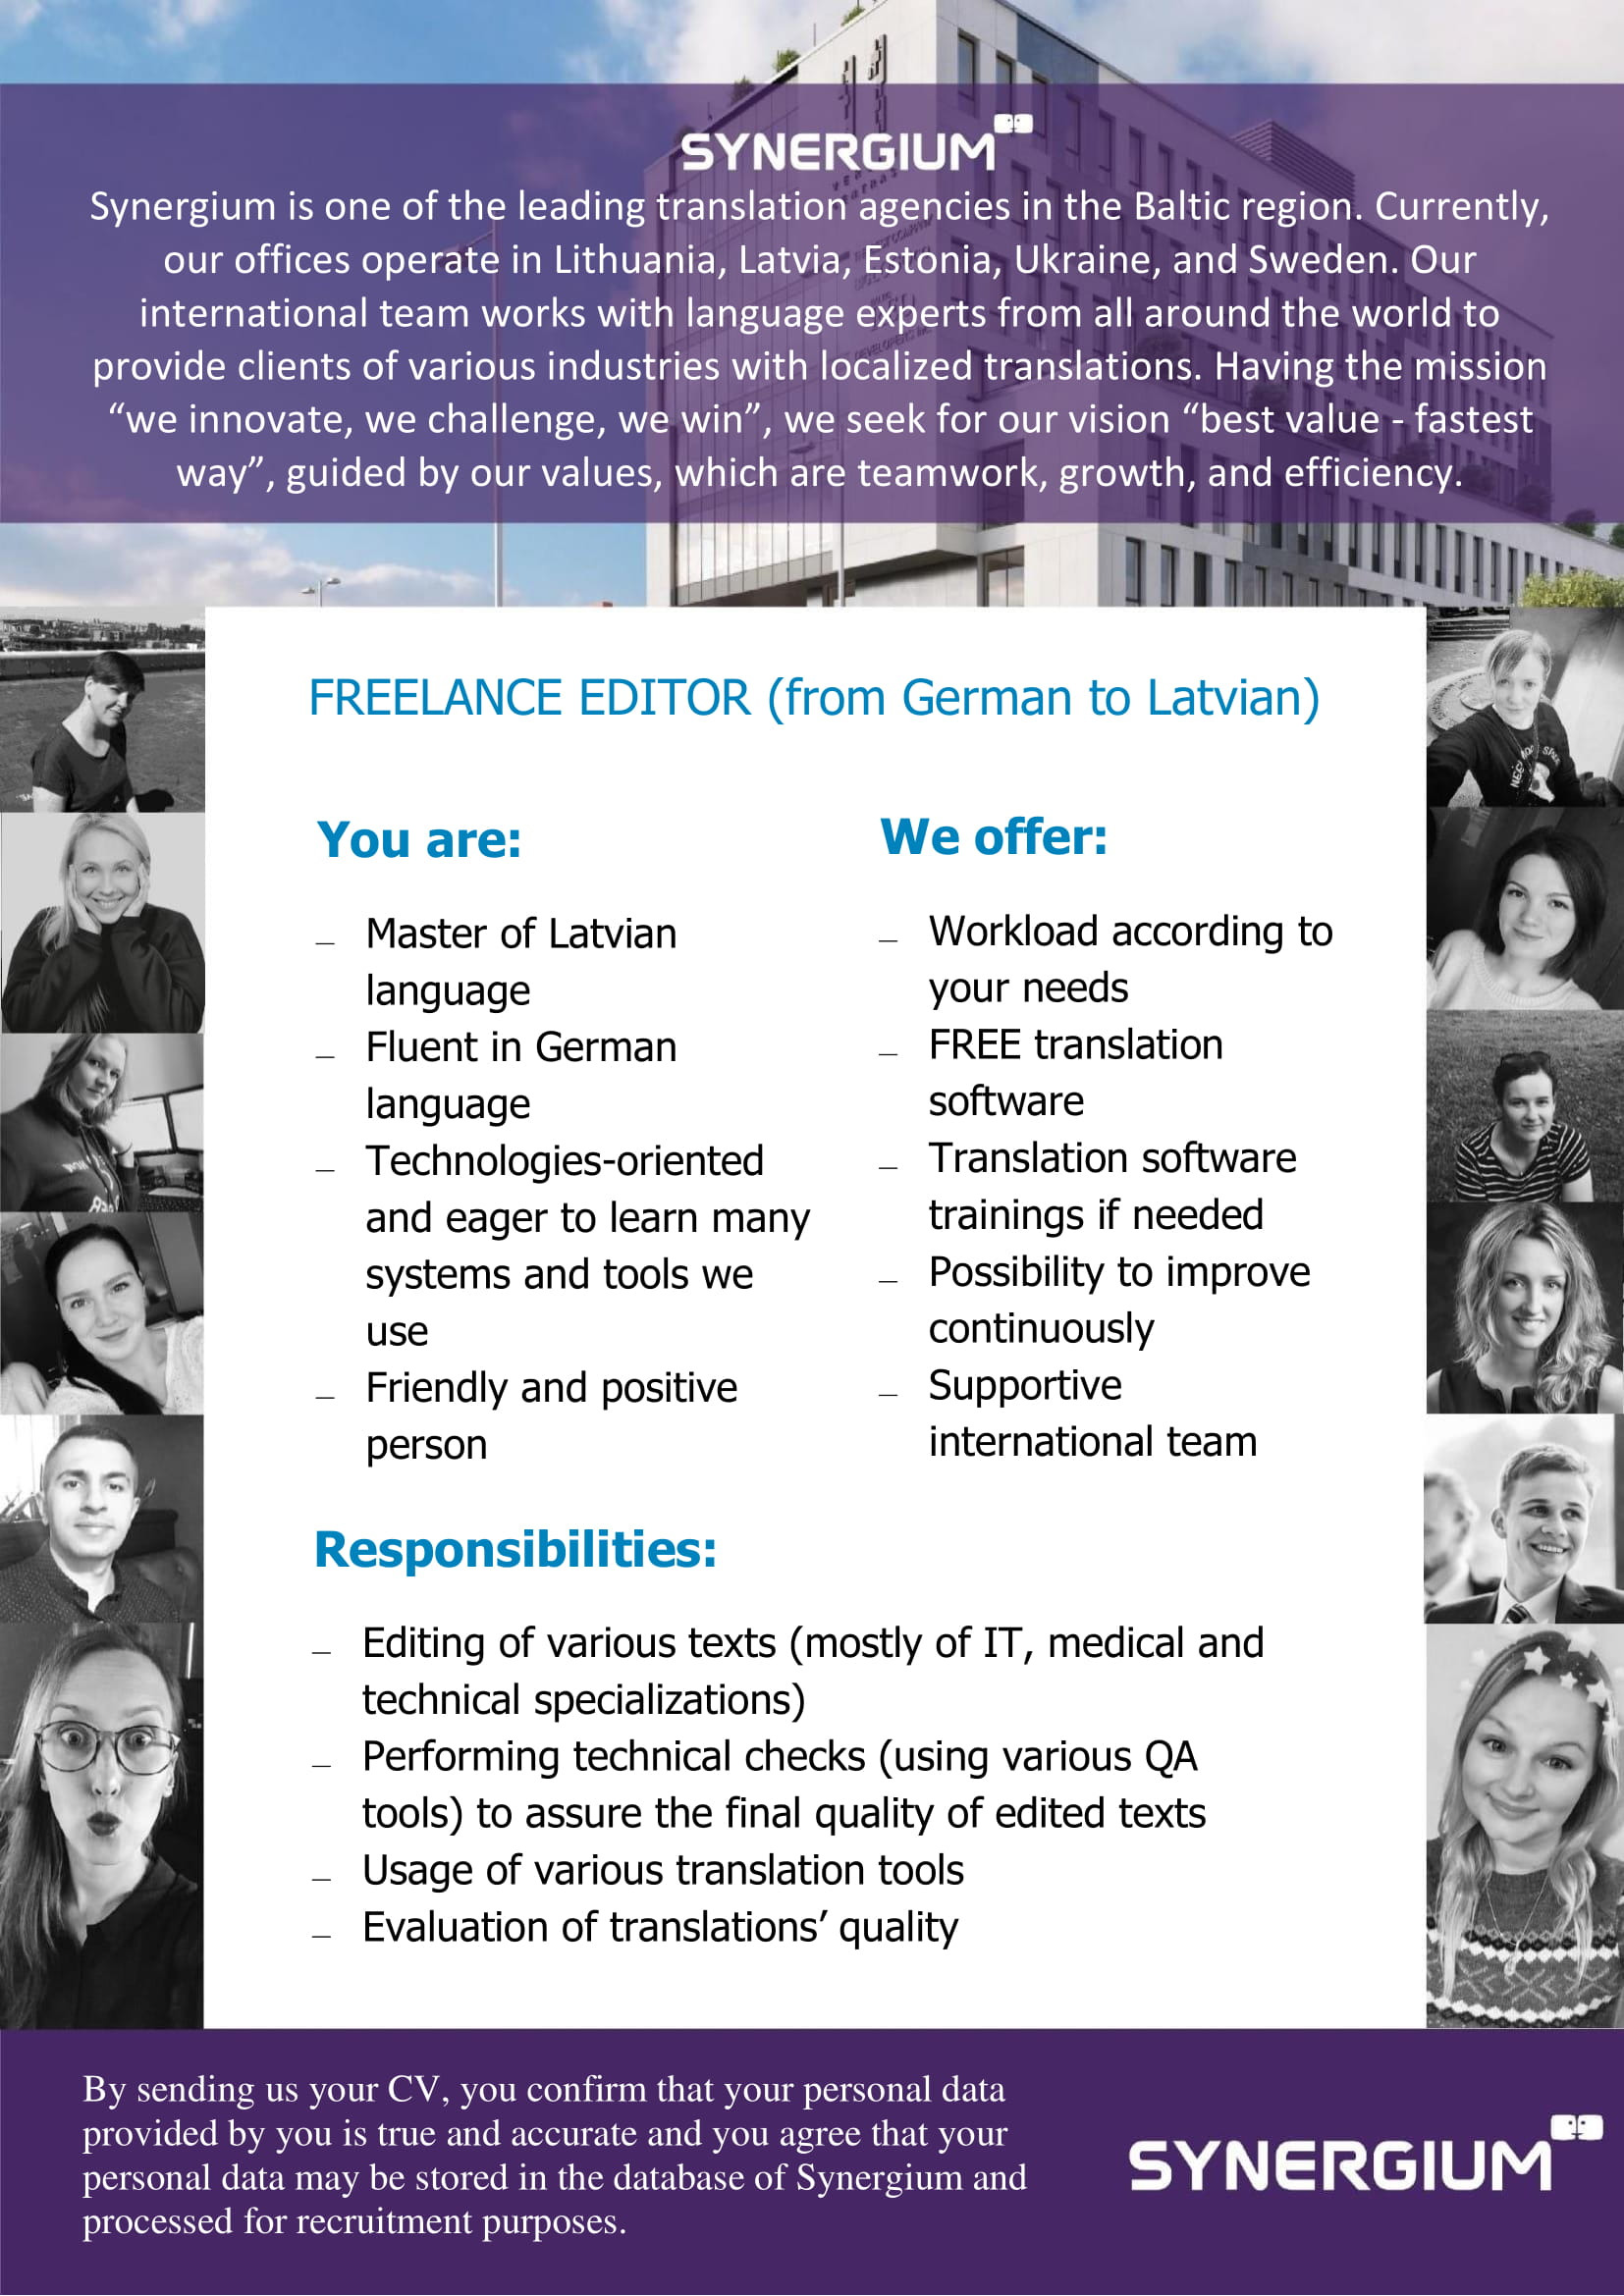 Freelance Editor from German to Latvian | Synergium Talents